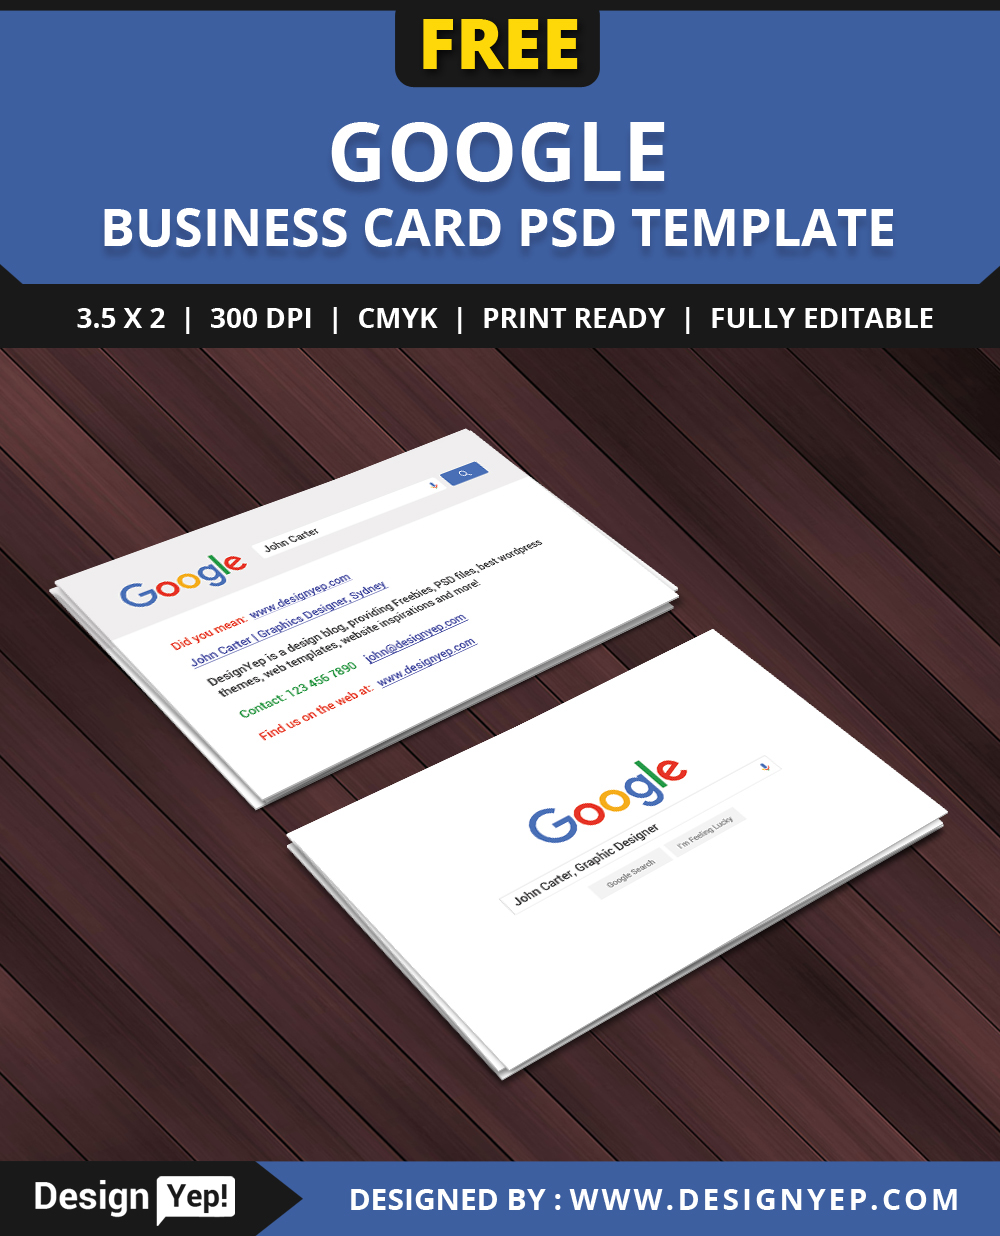 Free google interface business card psd template on behance accmission Image collections